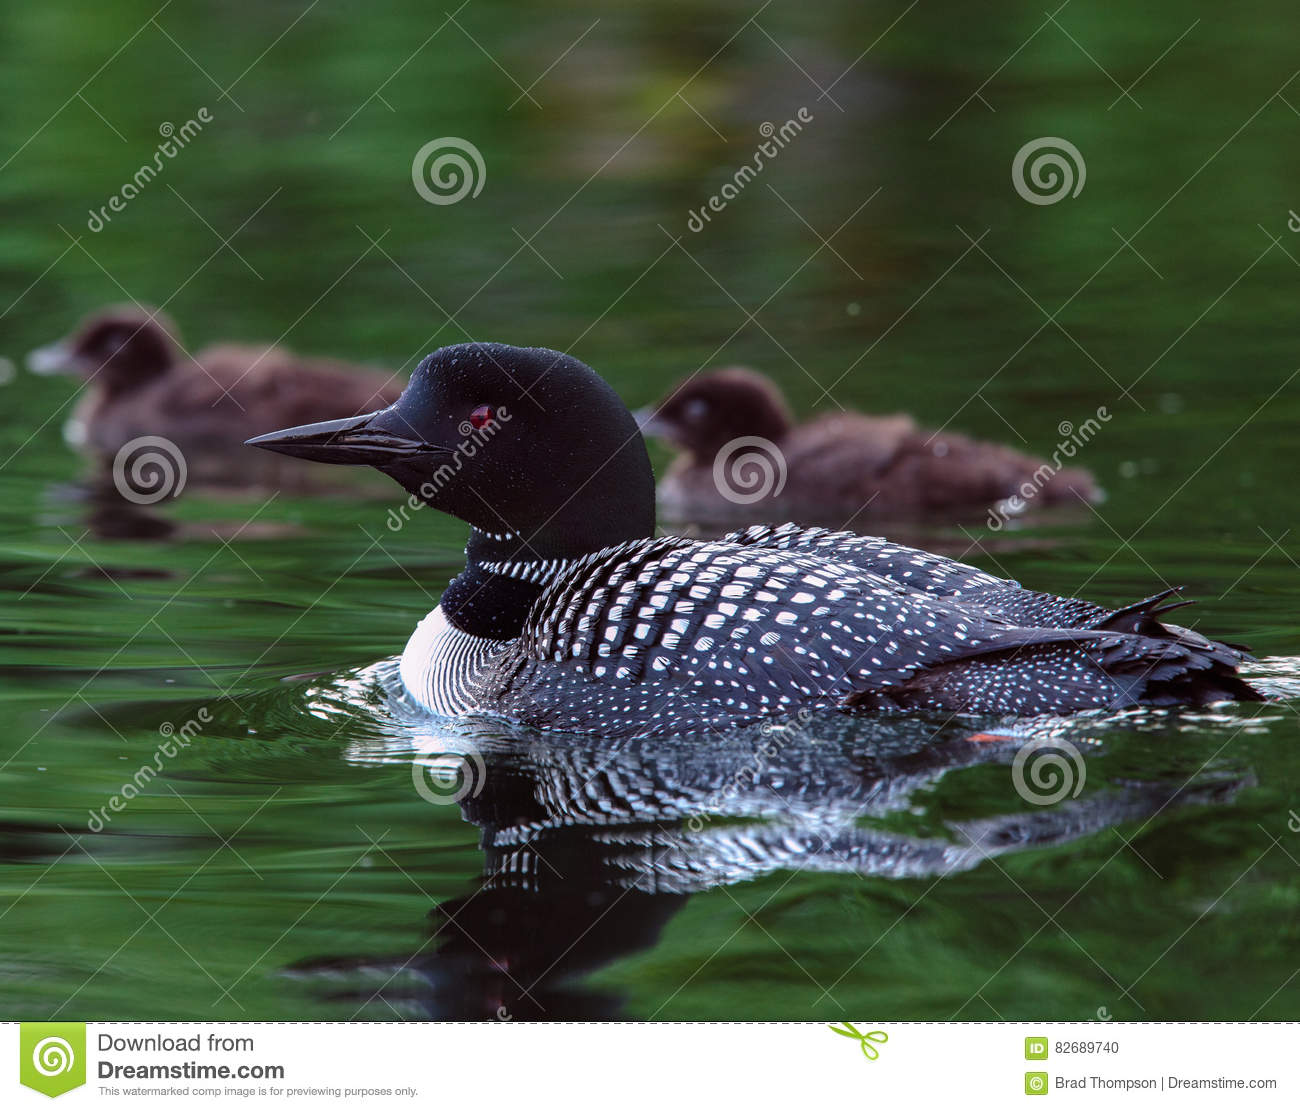 Common Loon Gavia immer with two baby chicks